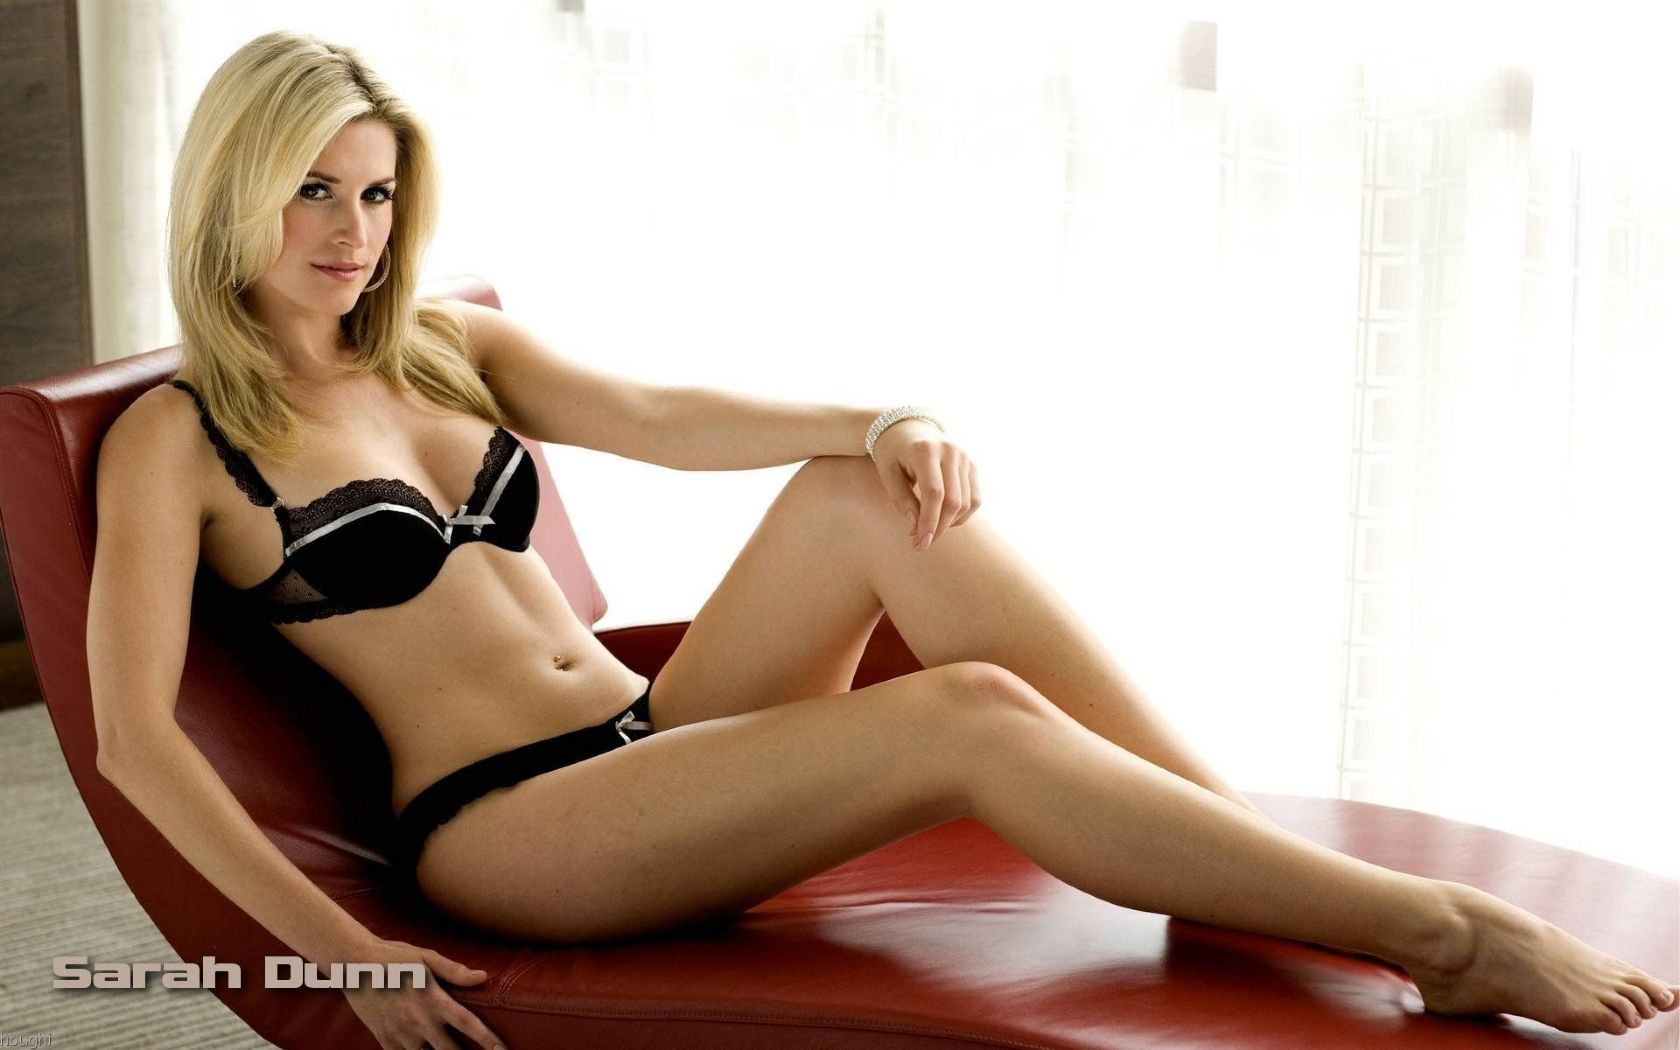 betsy beutler bikinibetsy beutler age, betsy beutler instagram, betsy beutler wiki, betsy beutler imdb, betsy beutler wikipedia, betsy beutler date of birth, betsy beutler, betsy beutler hot, betsy beutler playboy, betsy beutler feet, betsy beutler twitter, betsy beutler legit, betsy beutler bikini, betsy beutler you're the worst